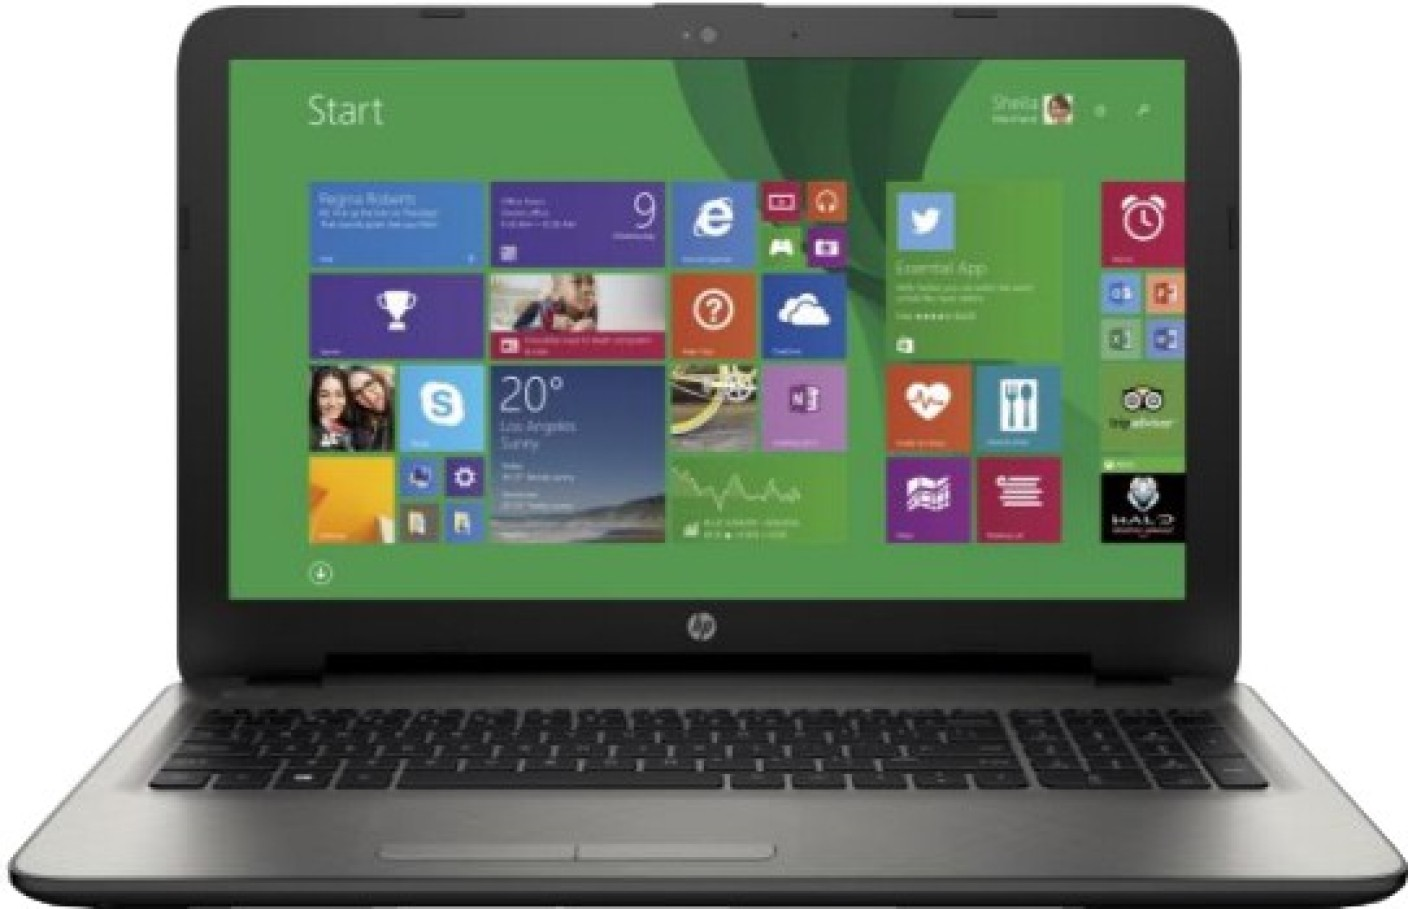 Hp notebook images - Add To Cart